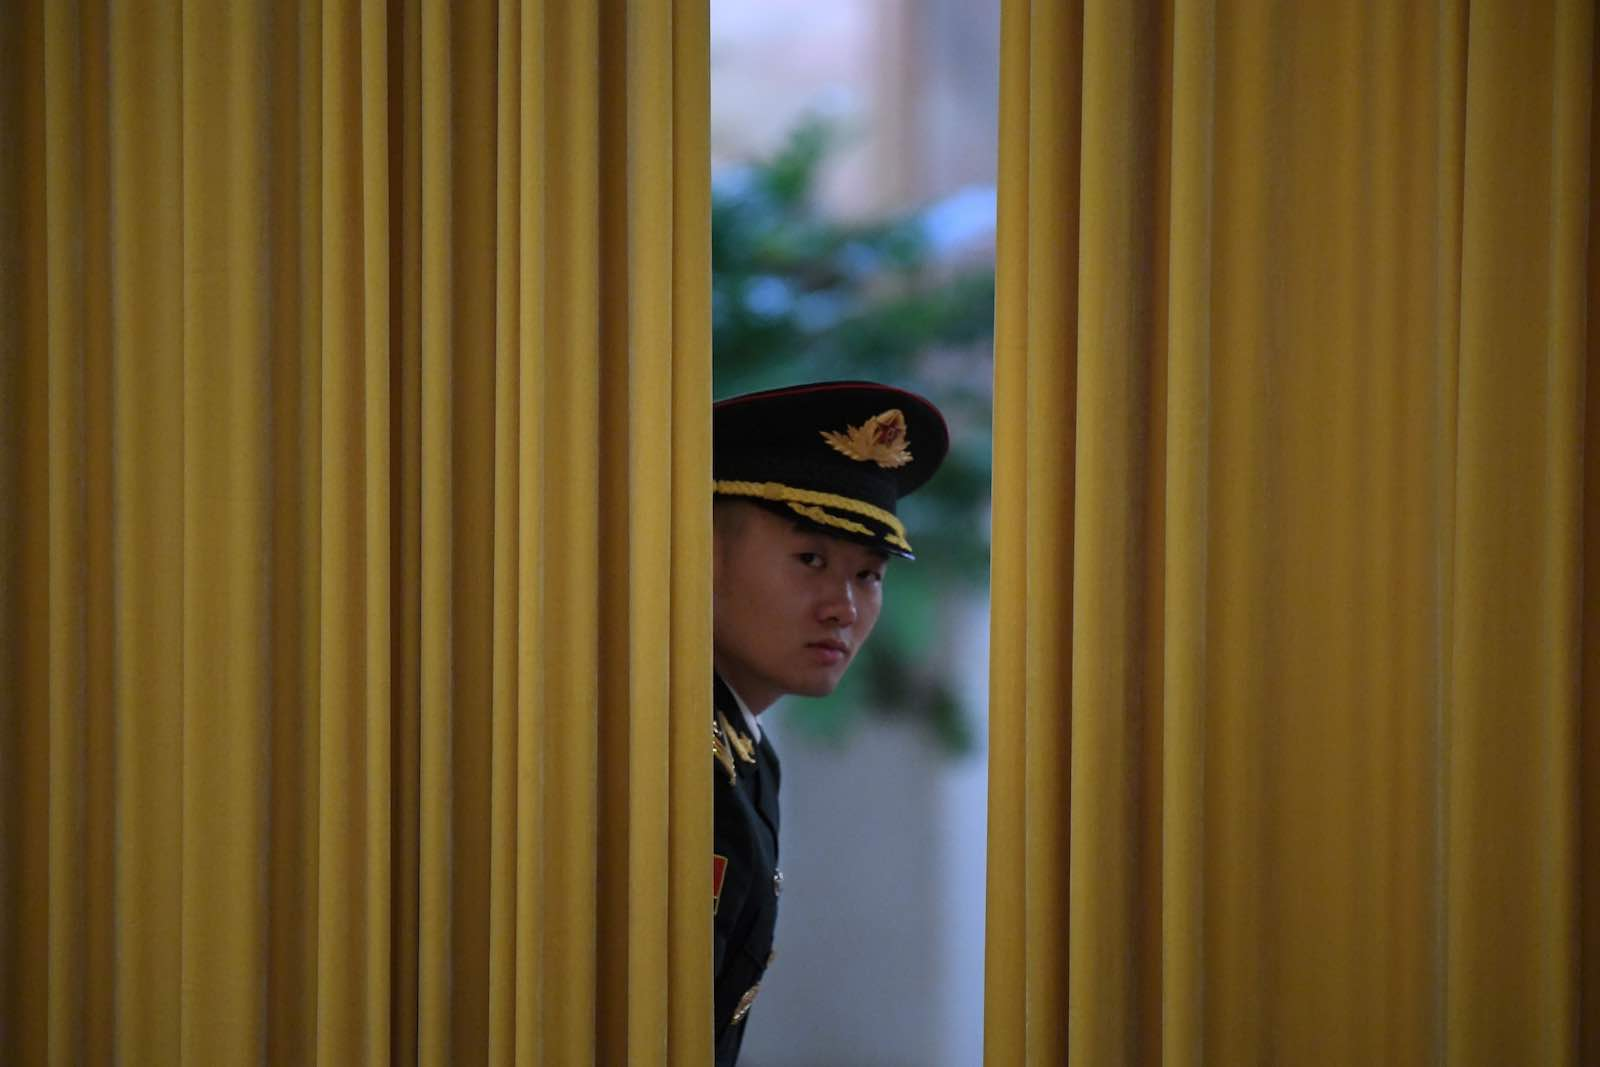 A Chinese honour guard peeks through a curtain before a welcome ceremony for Micronesia's President David Panuelo at the Great Hall of the People in Beijing in December (Photo: Noel Celis/AFP/Getty Images)